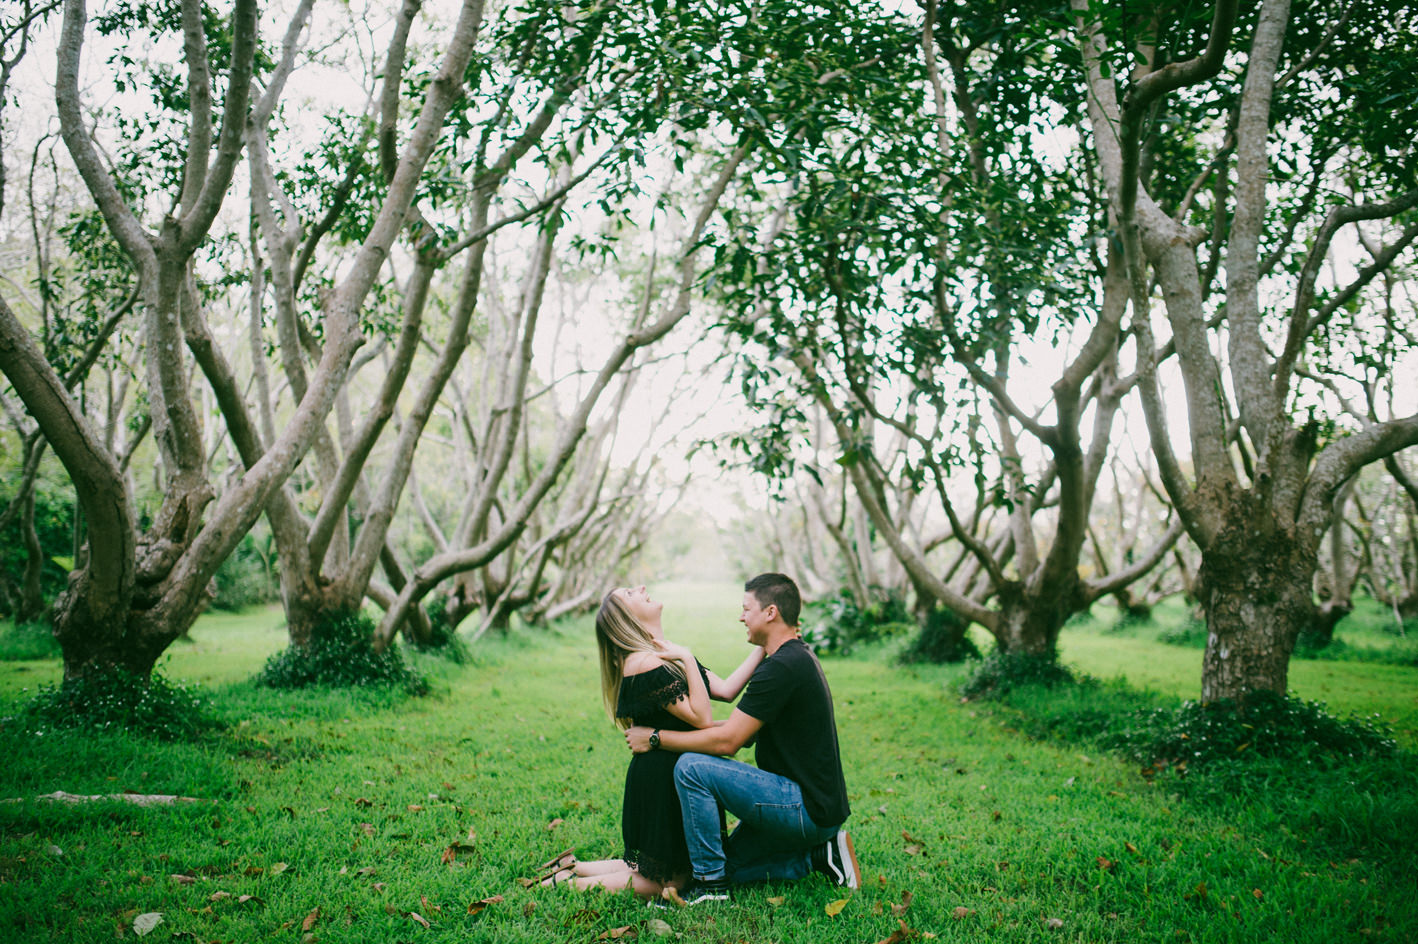 025-proposal-dan-ash_sophie-baker-photography